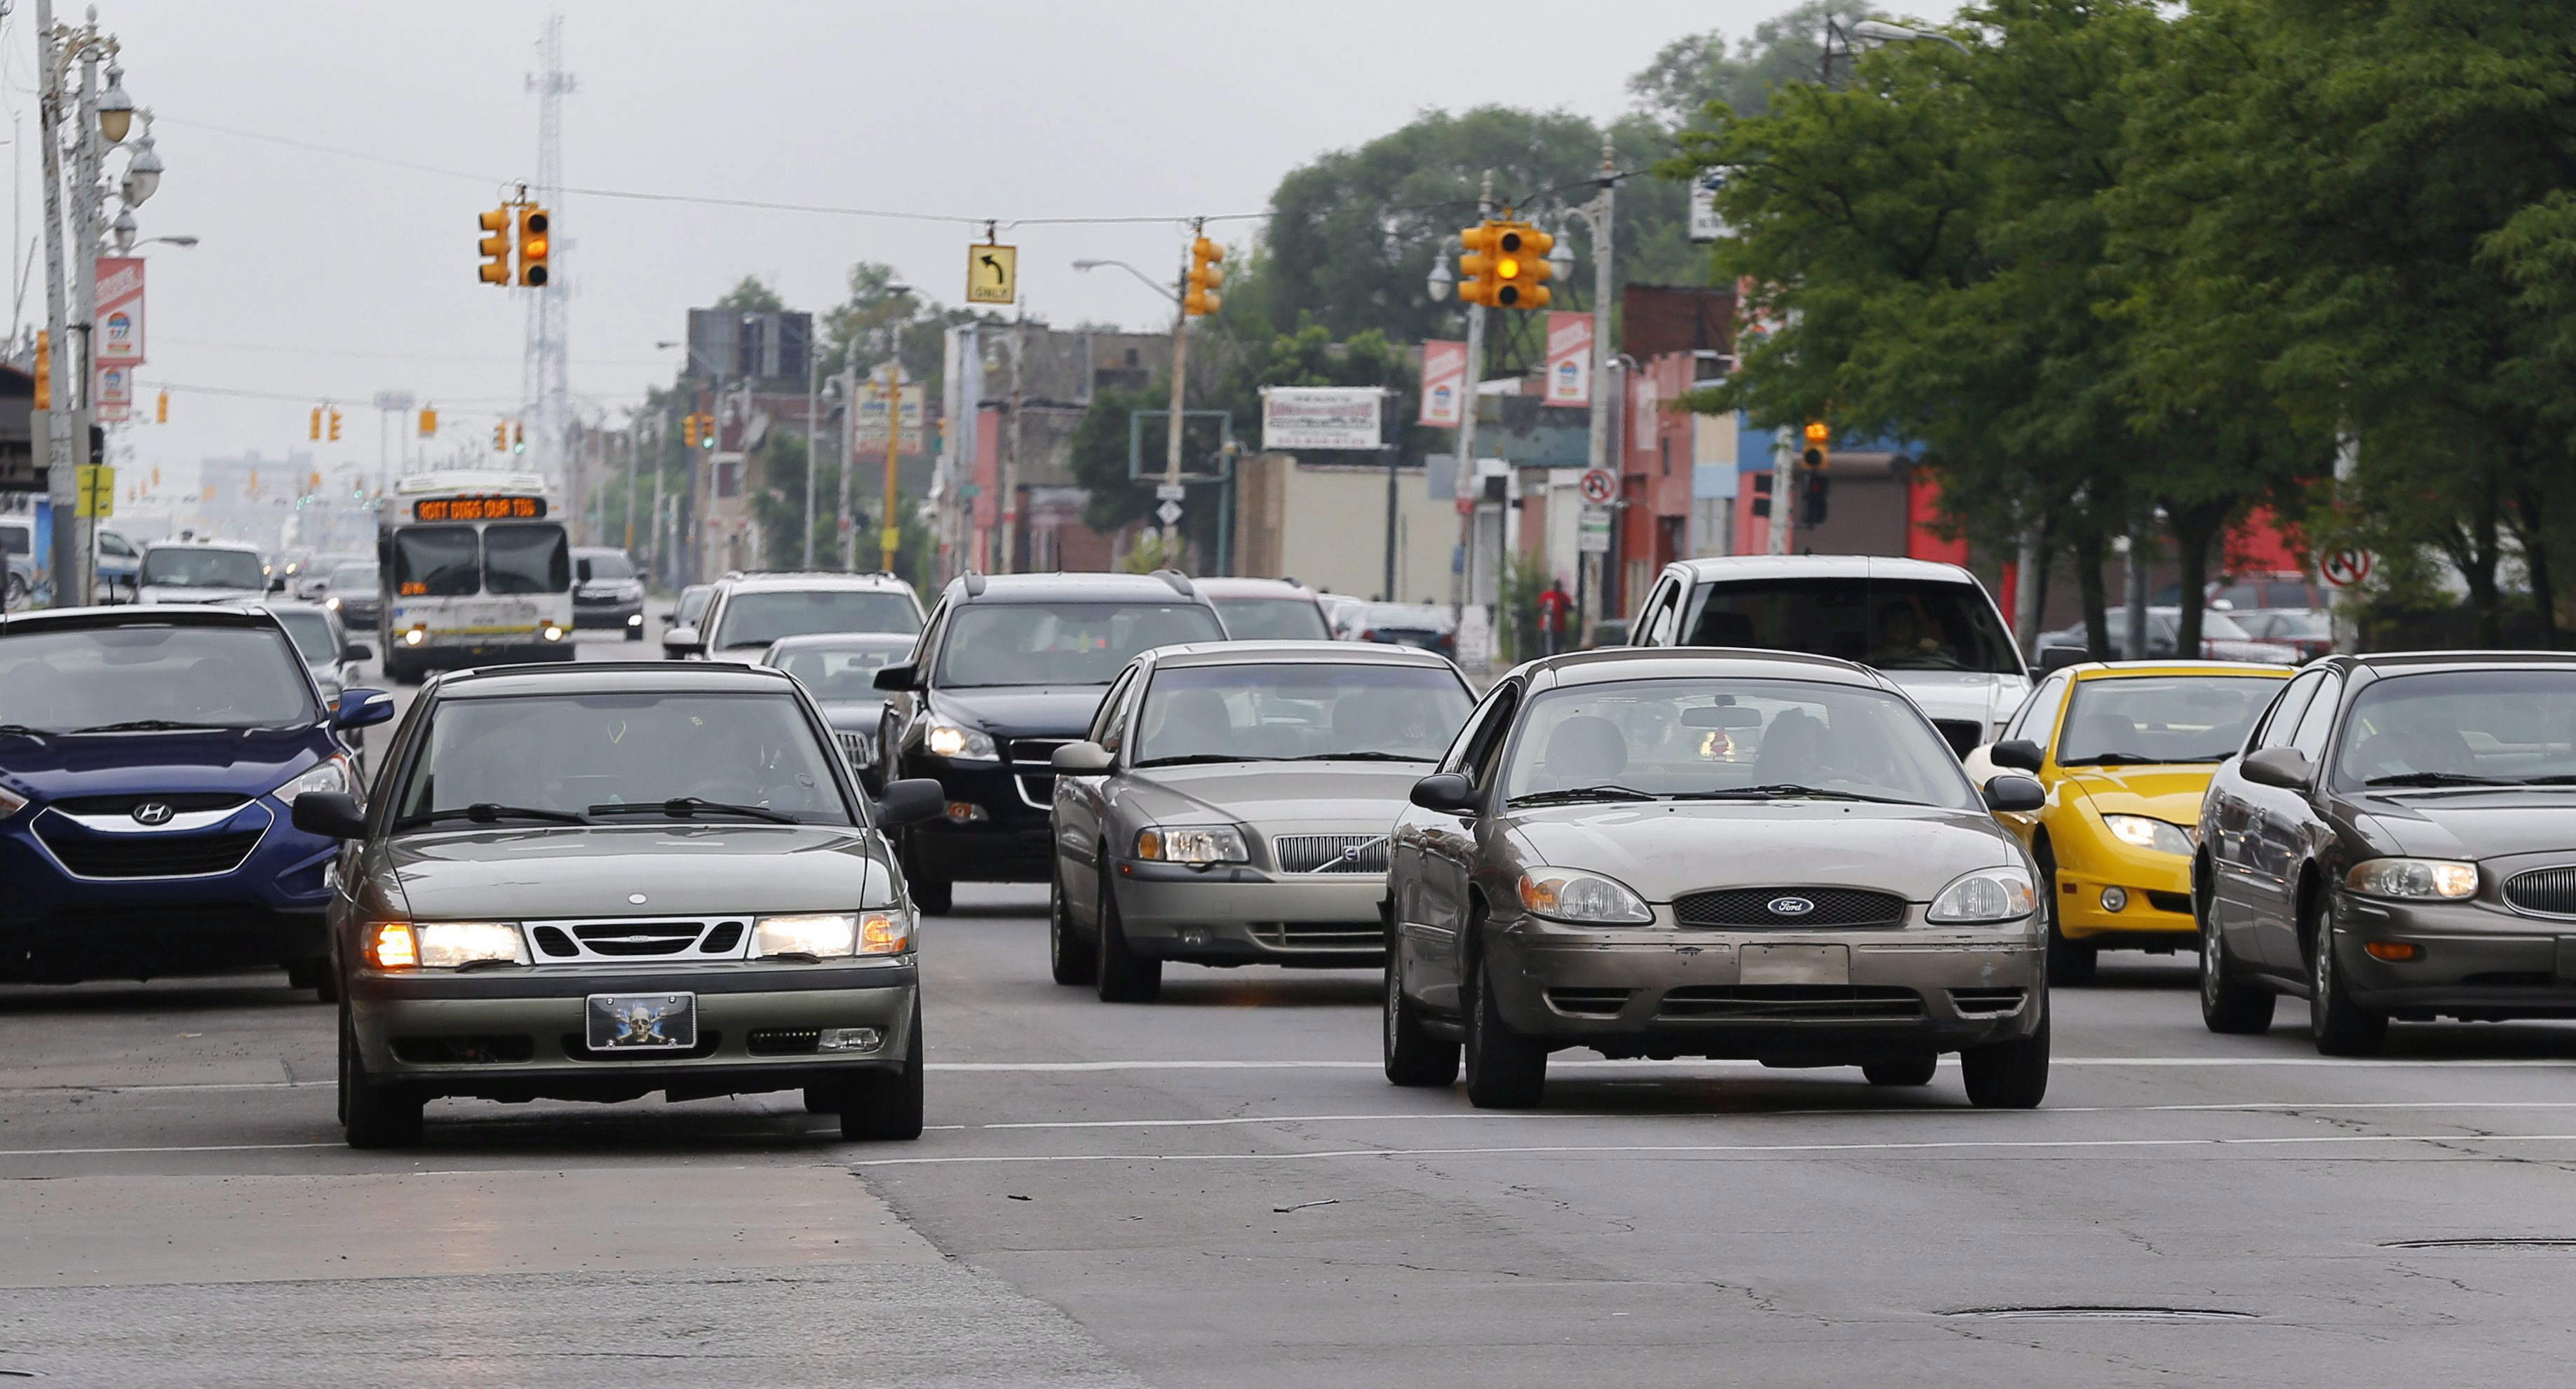 Ontario auto insurance rates increase as report slams system